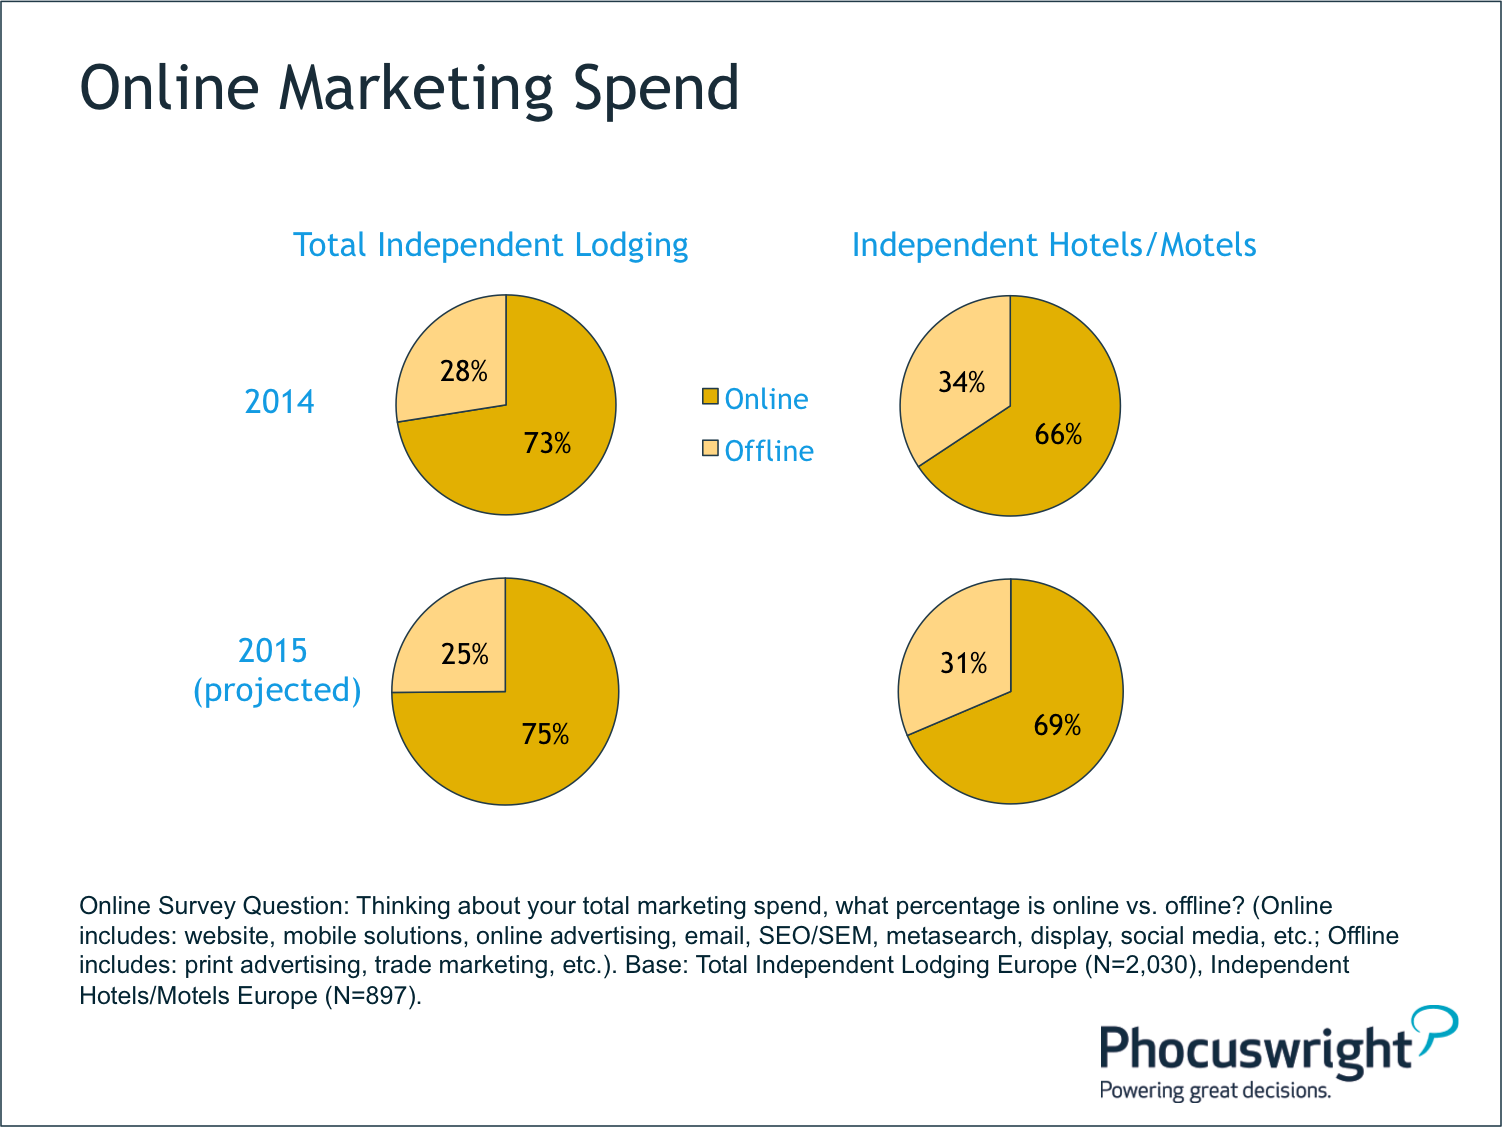 Online Marketing Spend